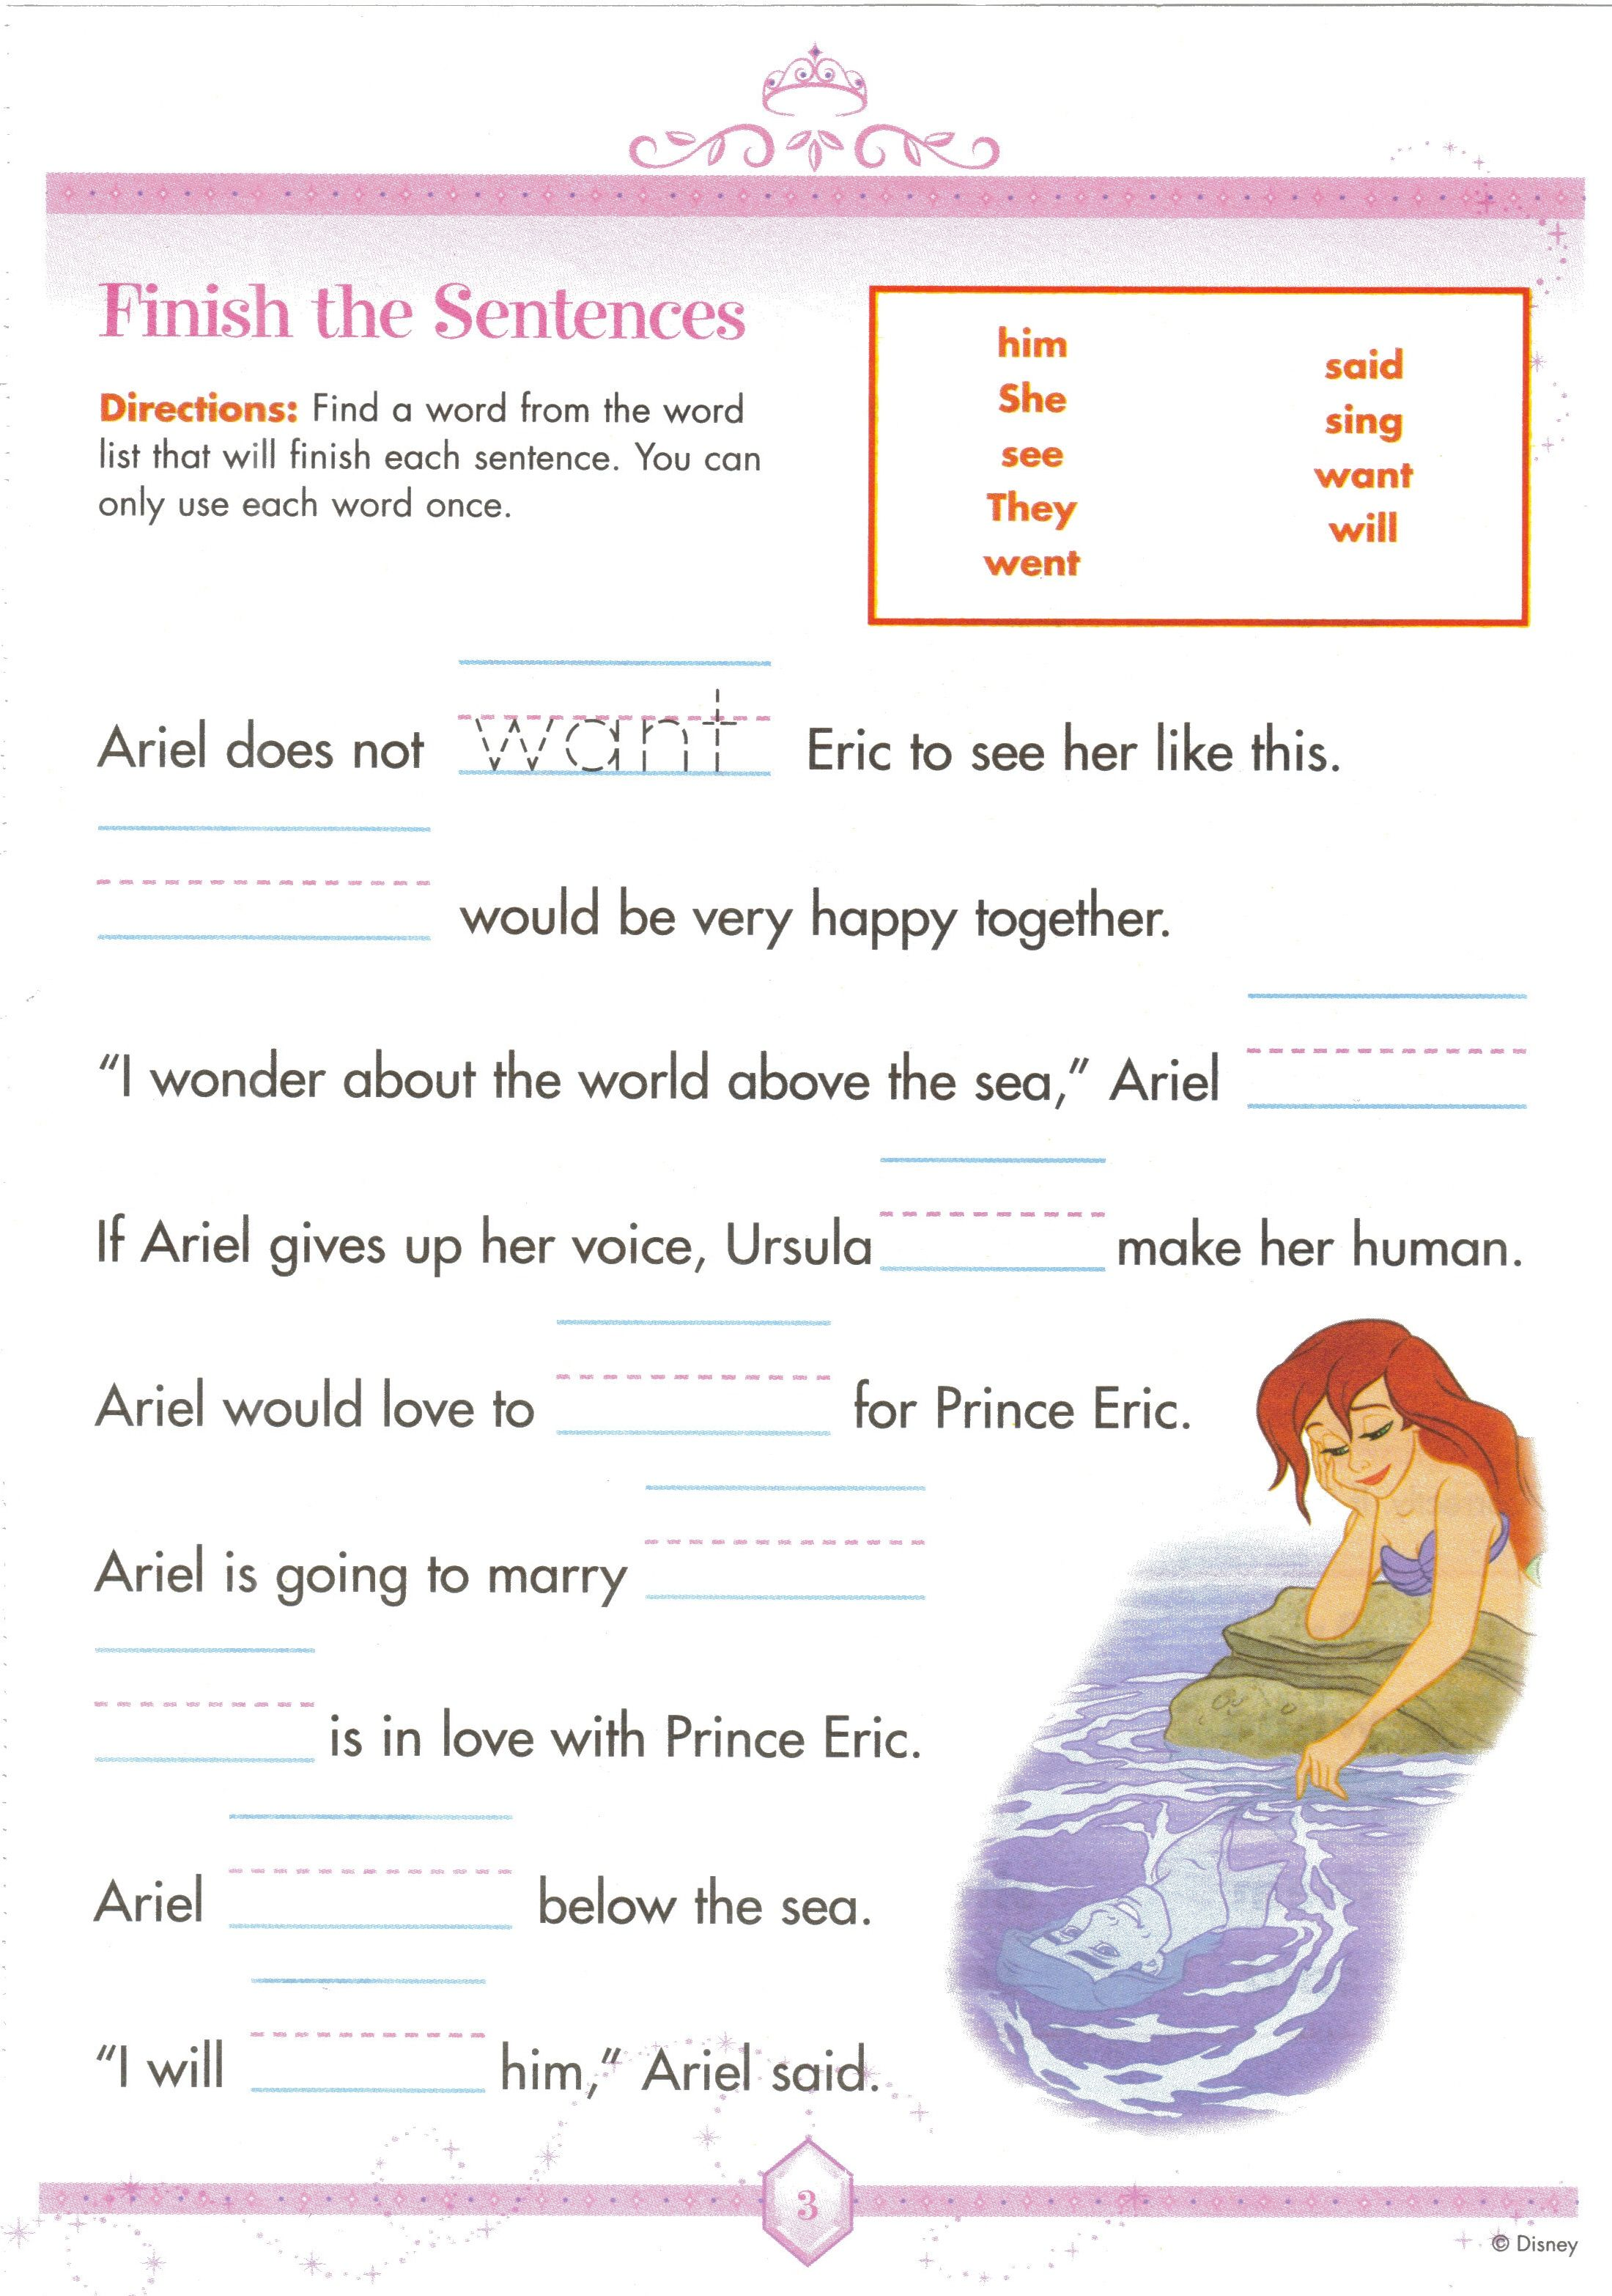 Weirdmailus  Nice  Images About Worksheets On Pinterest  Fun Facts For Kids  With Fascinating  Images About Worksheets On Pinterest  Fun Facts For Kids Earth Day Worksheets And Jungles With Cool Linear Inequalities Worksheet Answers Also Printable Worksheets For Grade  In Addition Home Safety Worksheets And Th Grade Long Division Worksheet As Well As Converting Capacity Worksheet Additionally Great Wall Of China Worksheets From Pinterestcom With Weirdmailus  Fascinating  Images About Worksheets On Pinterest  Fun Facts For Kids  With Cool  Images About Worksheets On Pinterest  Fun Facts For Kids Earth Day Worksheets And Jungles And Nice Linear Inequalities Worksheet Answers Also Printable Worksheets For Grade  In Addition Home Safety Worksheets From Pinterestcom